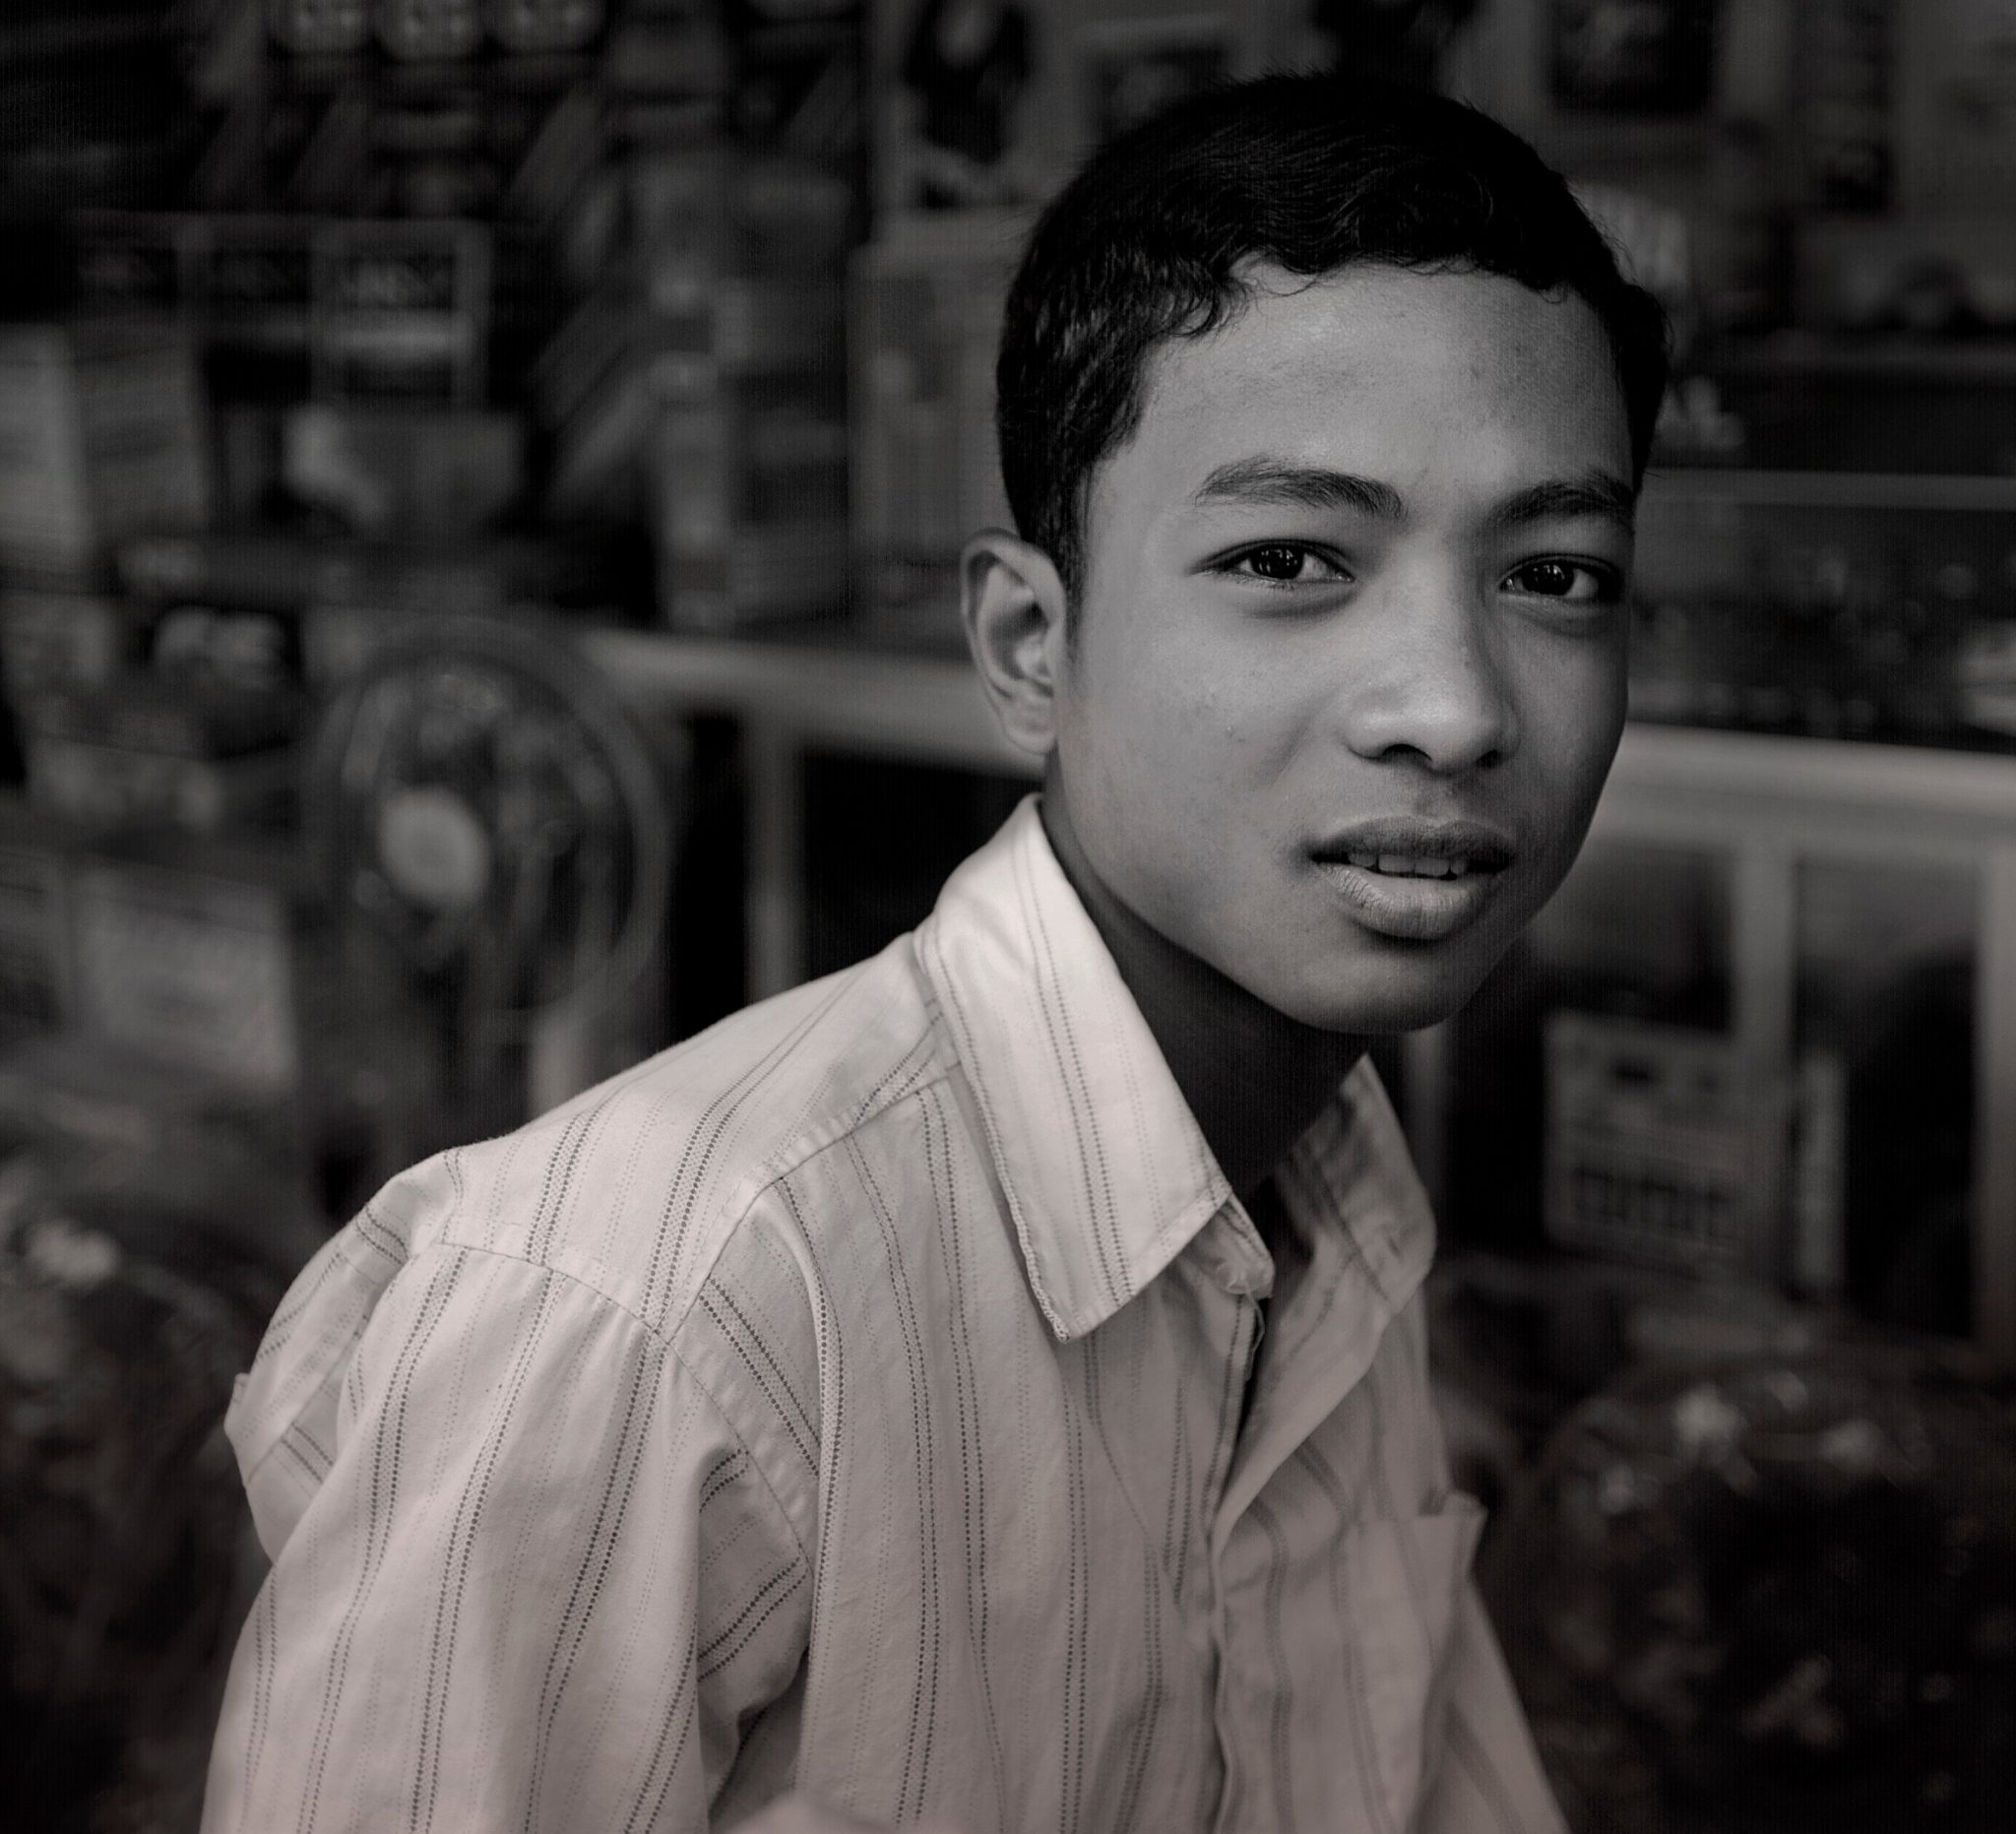 Young Visayan Man in a Strange World